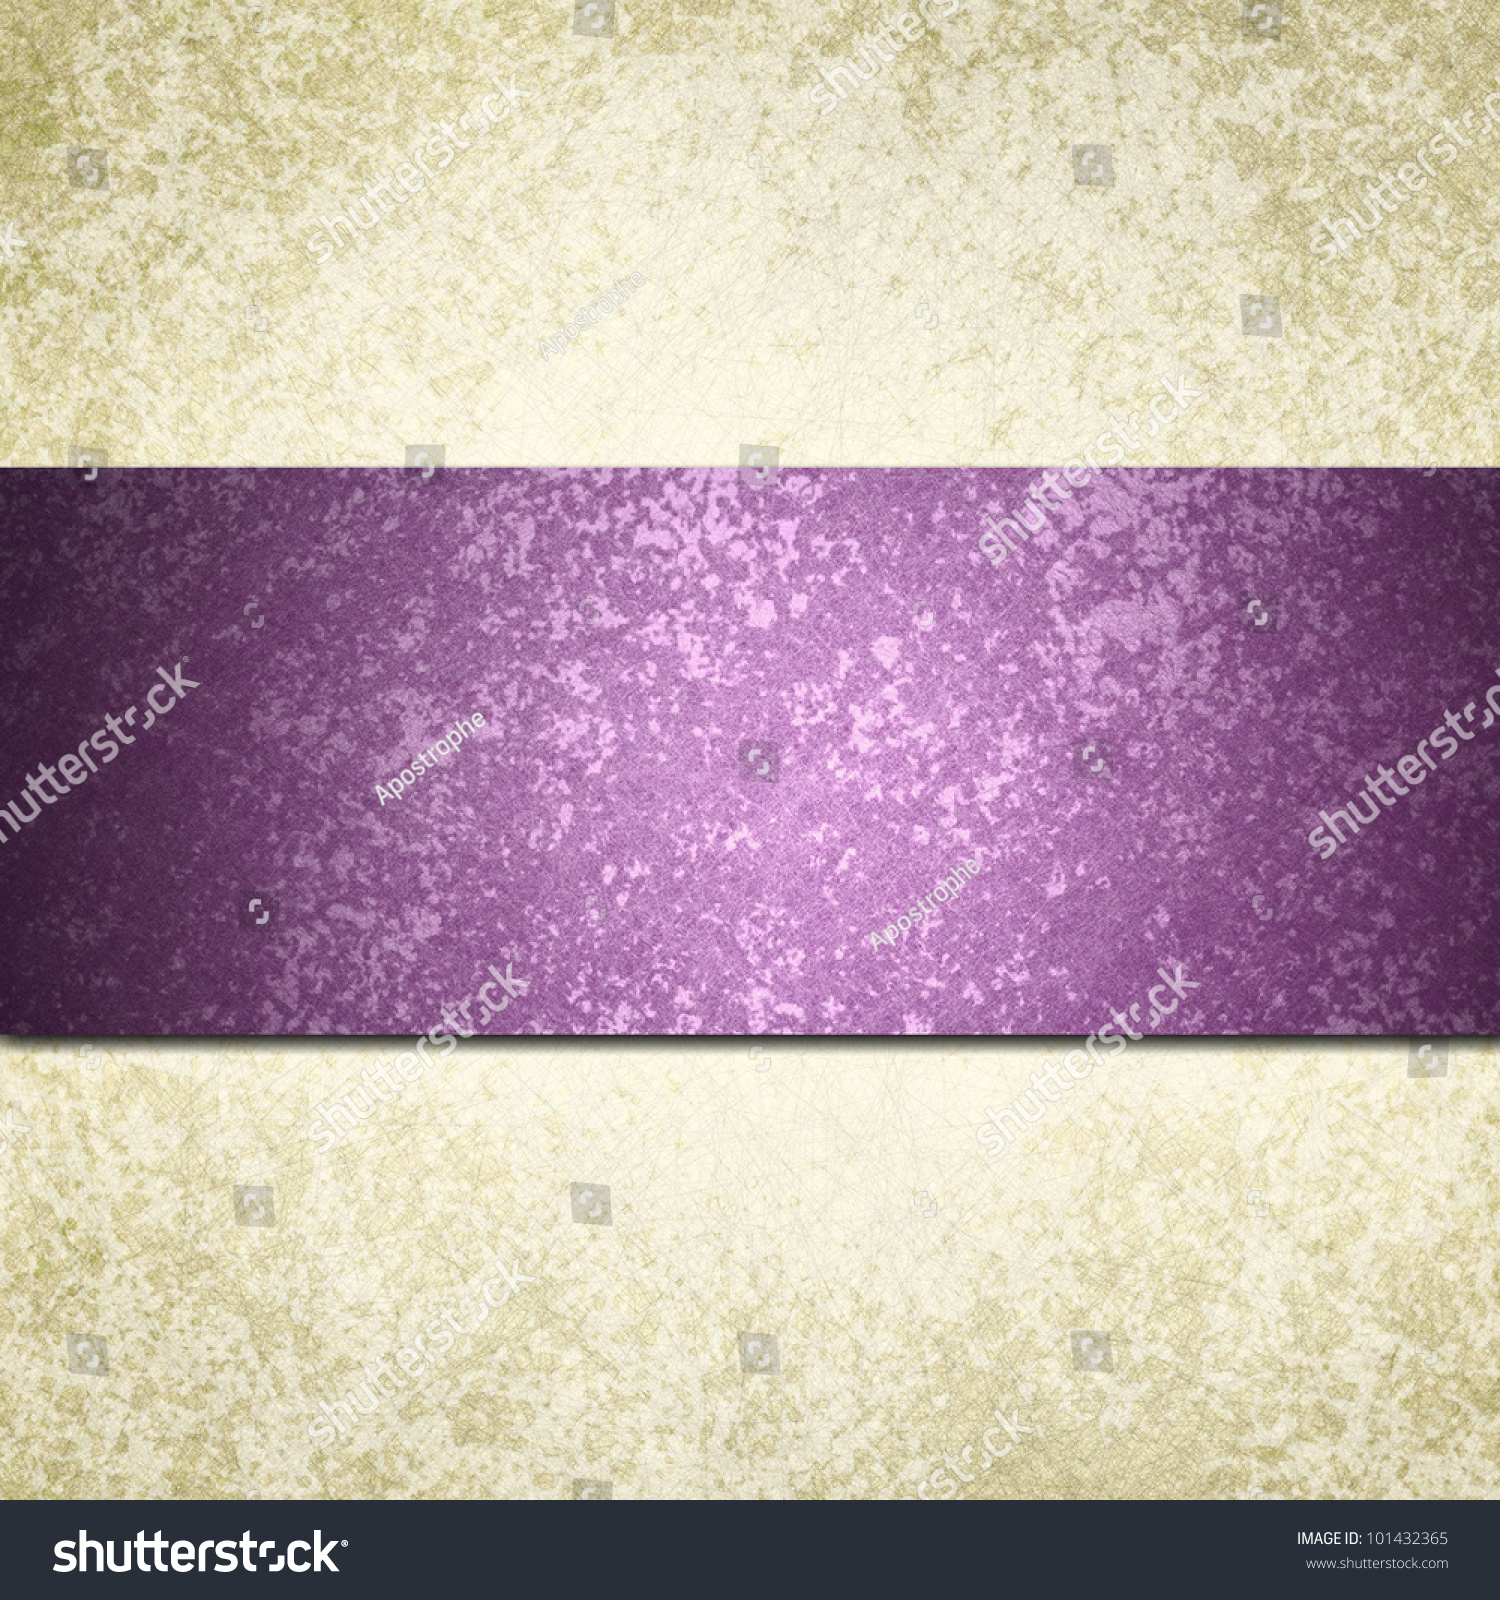 formal white background with purple ribbon or stripe and vintage grunge background texture